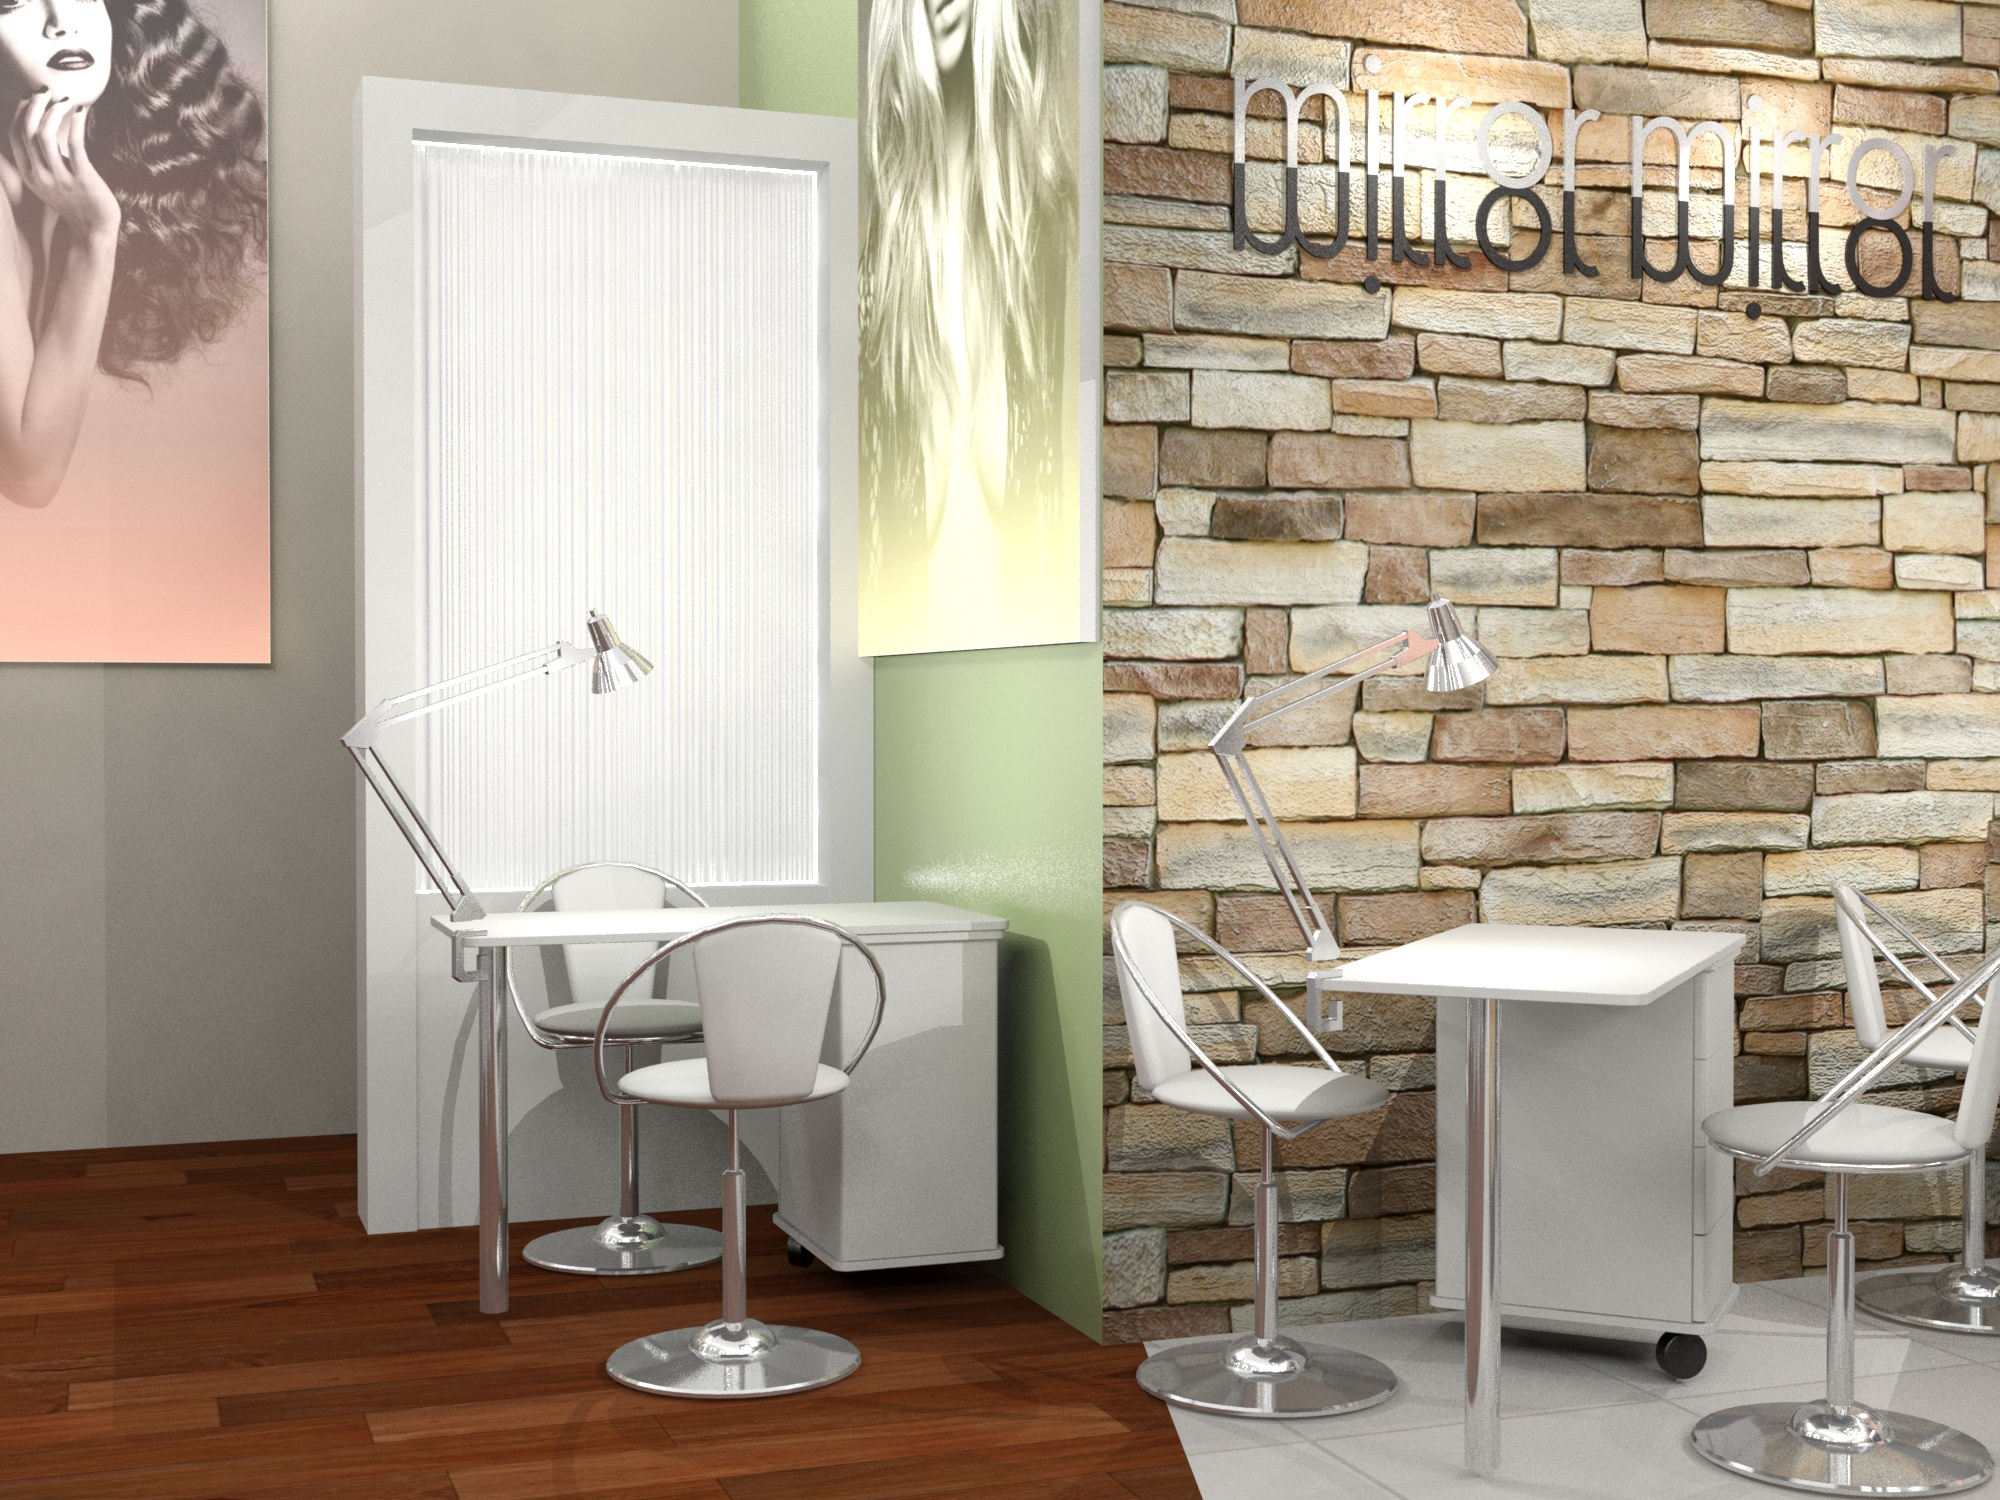 Interior Design - Hair Salon - SugarLab Creative